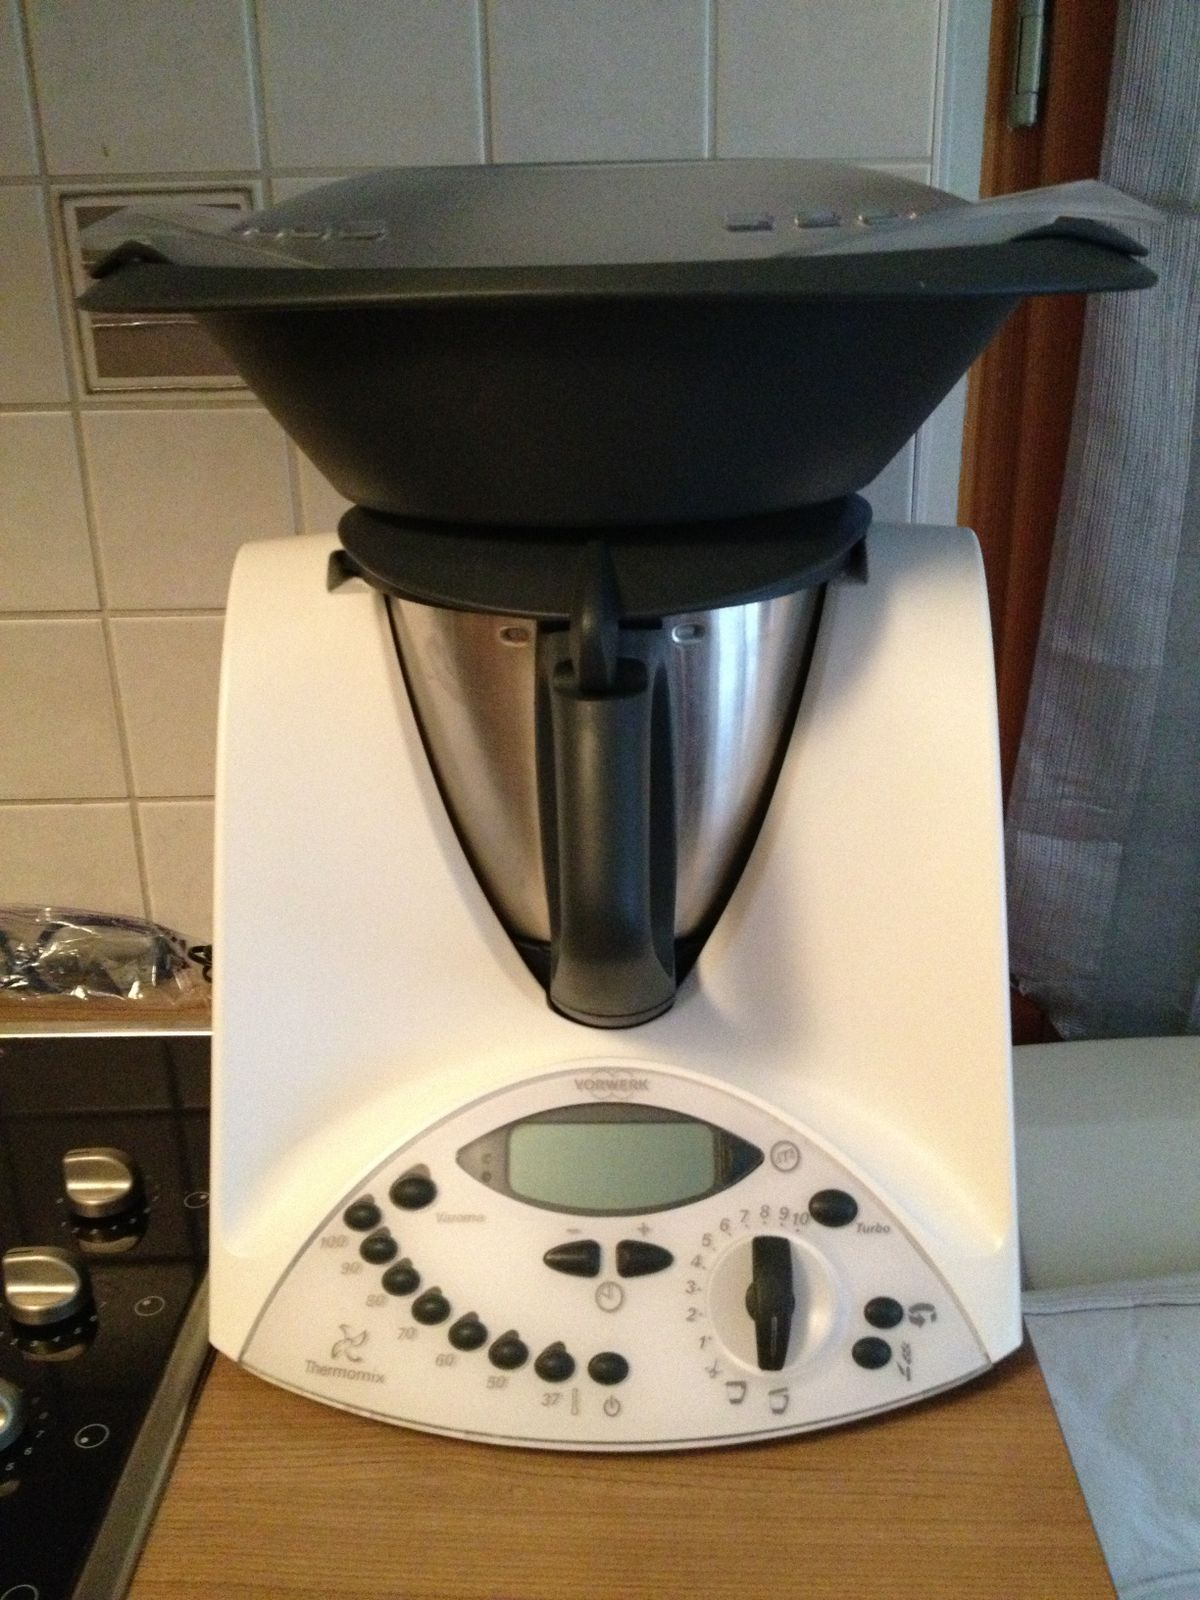 thermomix tm 31 de chez vorwerk cousine 39 s cake delphine hubert. Black Bedroom Furniture Sets. Home Design Ideas